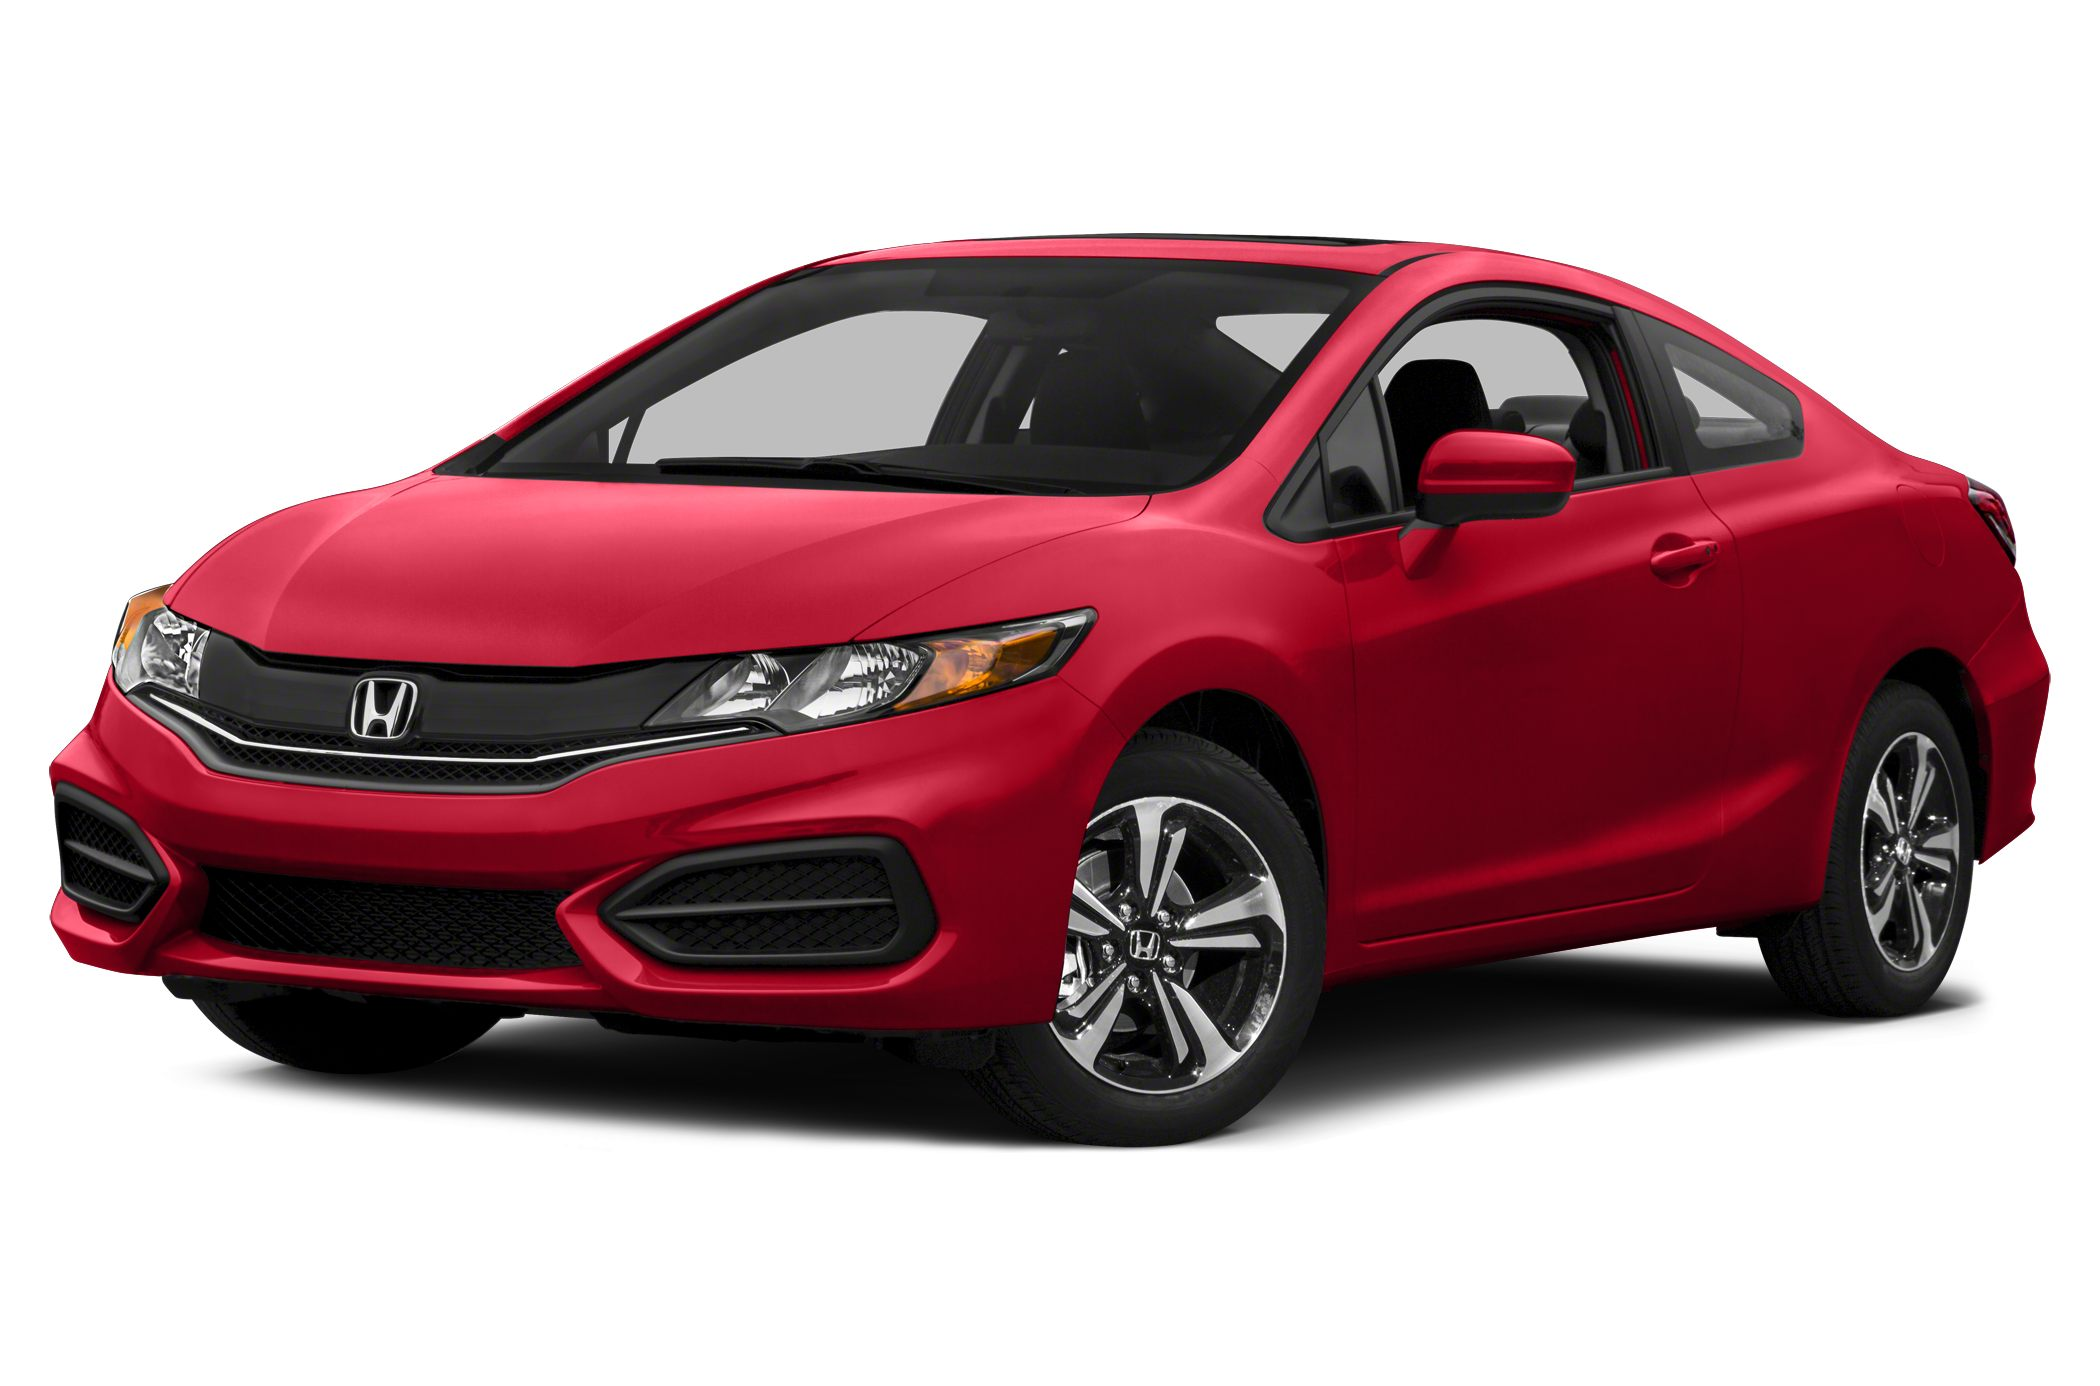 2015 Honda Civic EX Sedan for sale in Scranton for $21,980 with 10 miles